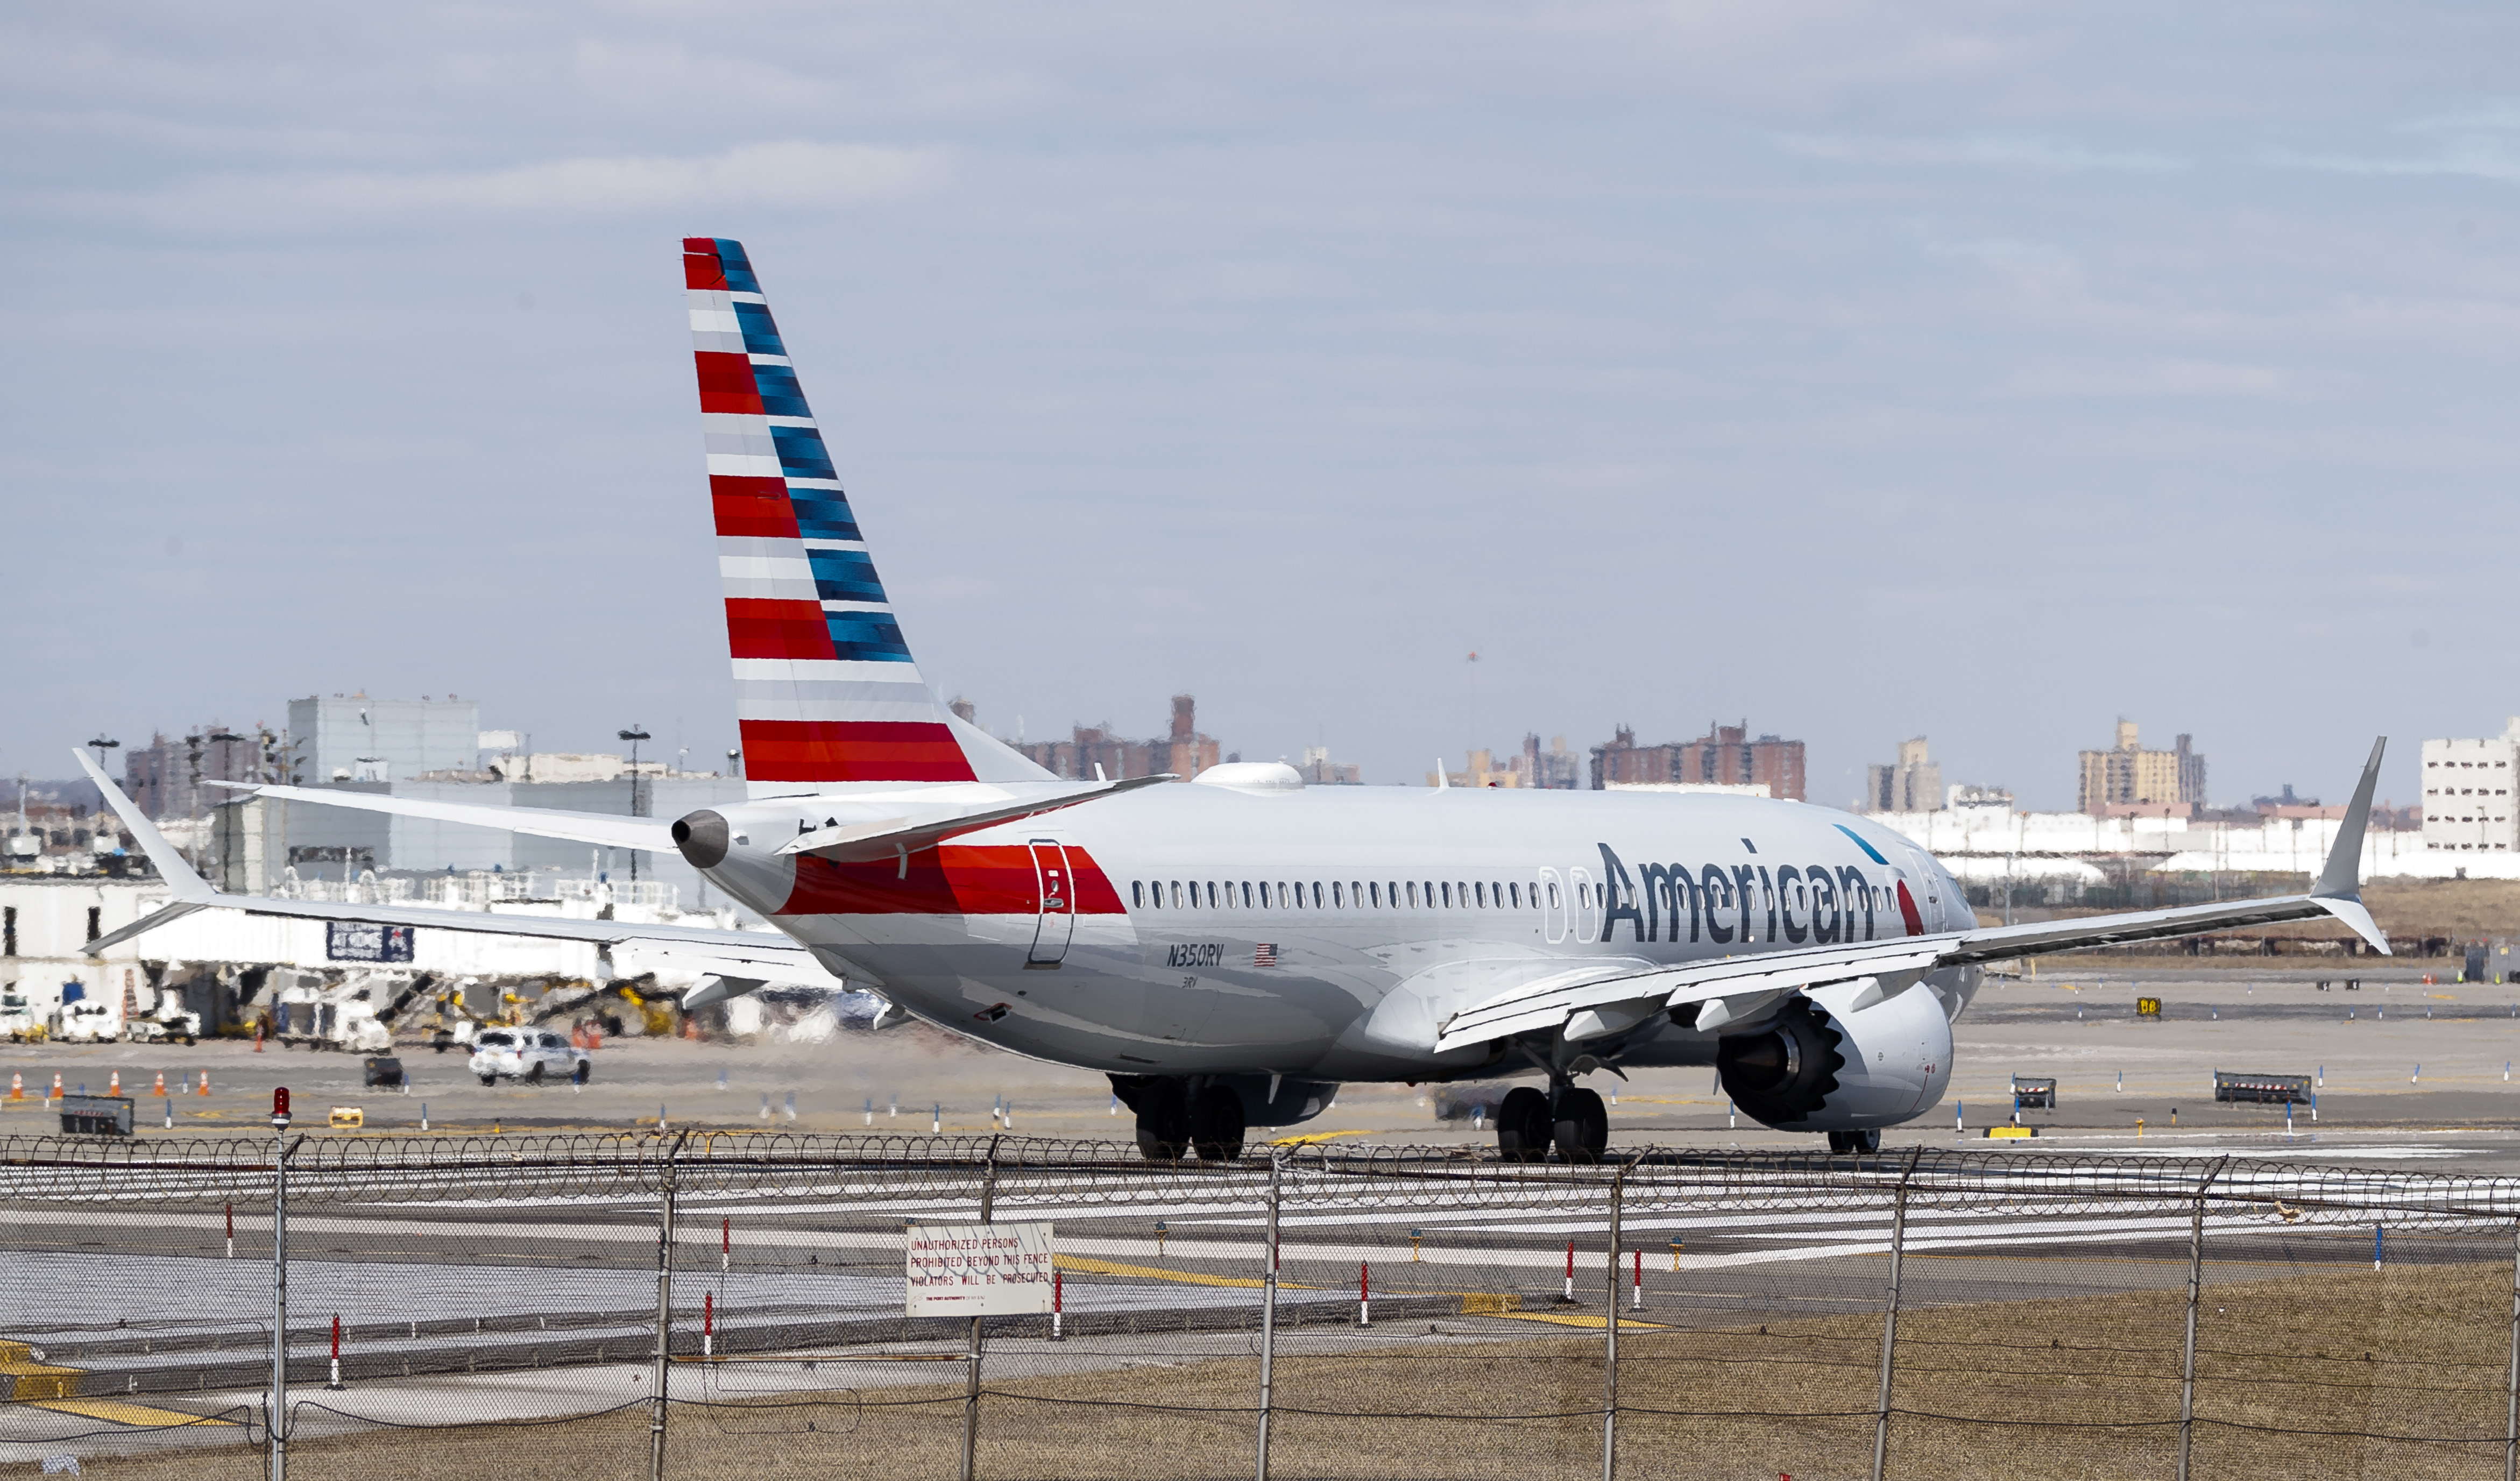 An American Airlines Boeing 737 Max 8 (Tail Number N350RV) prepares for takeoff at LaGuardia Airport in New York, New York, USA, 12 March 2019. EPA